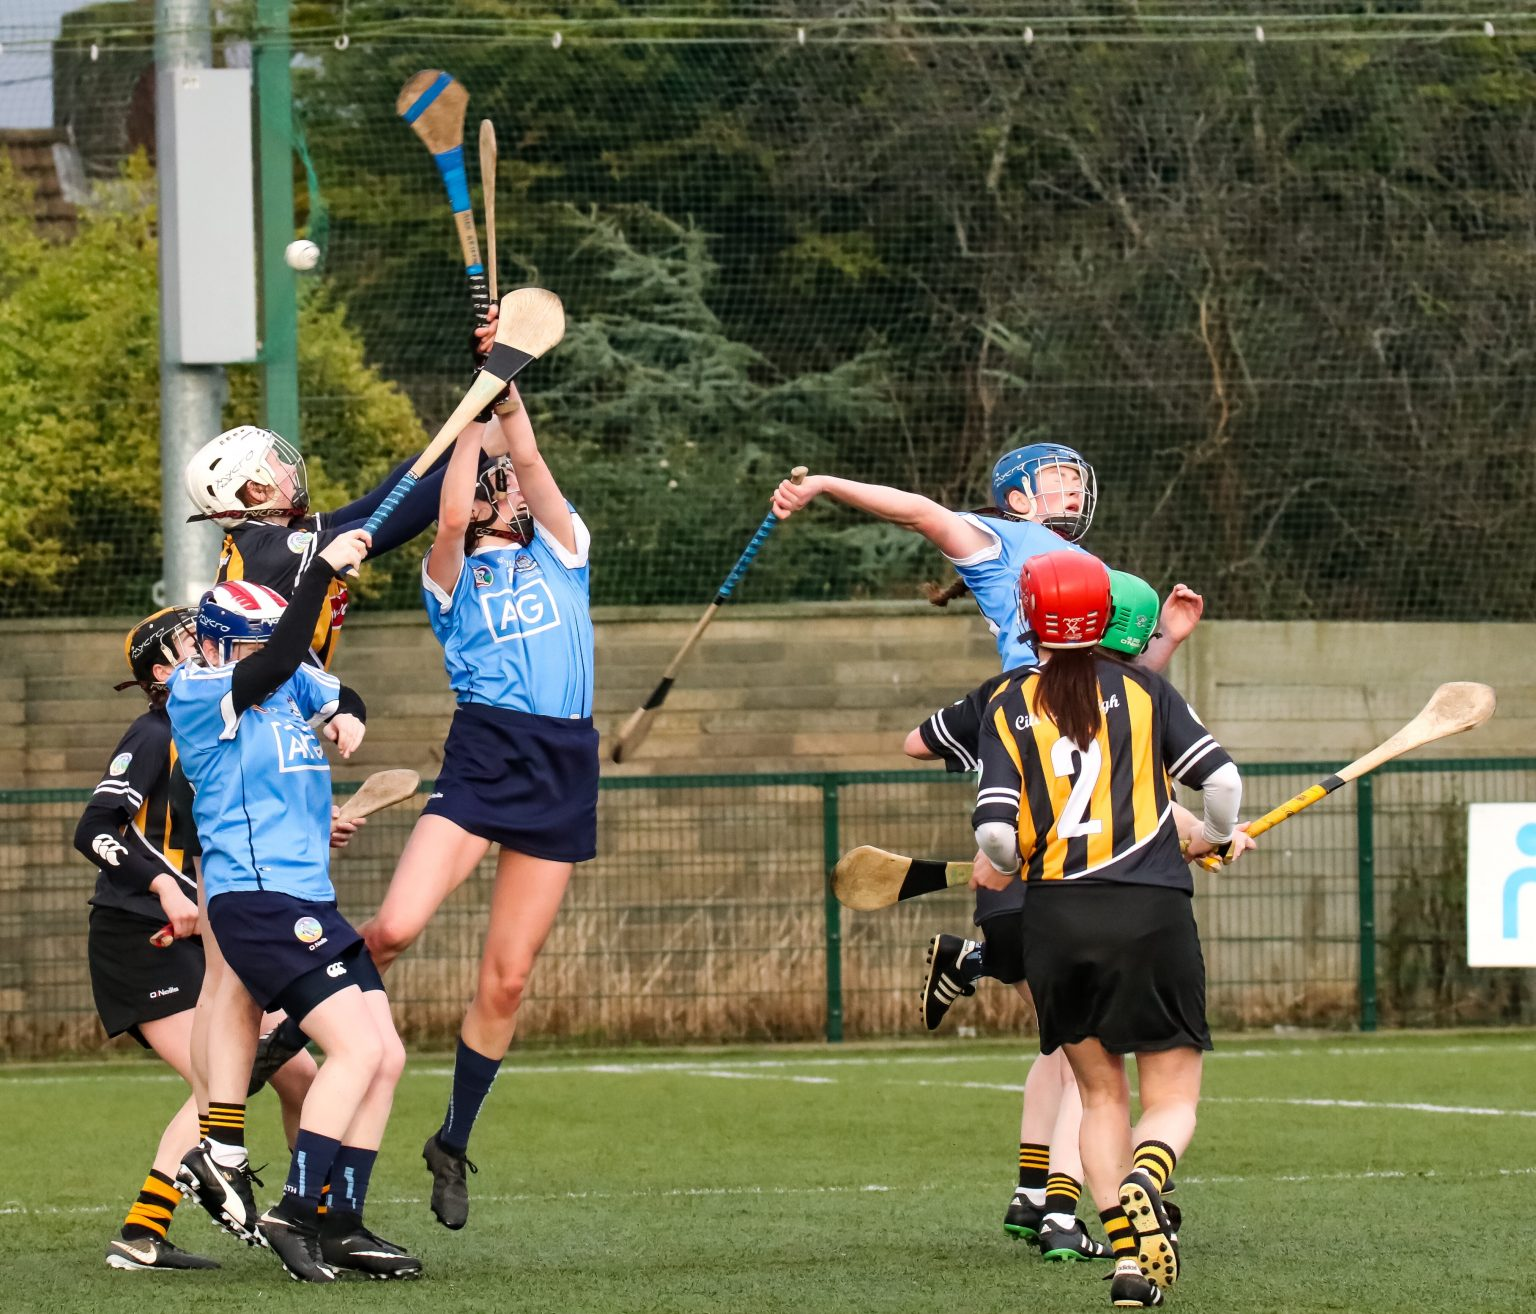 Action From The Dublin v Kilkenny Littlewoods Ireland Camogie League Division 1 Game